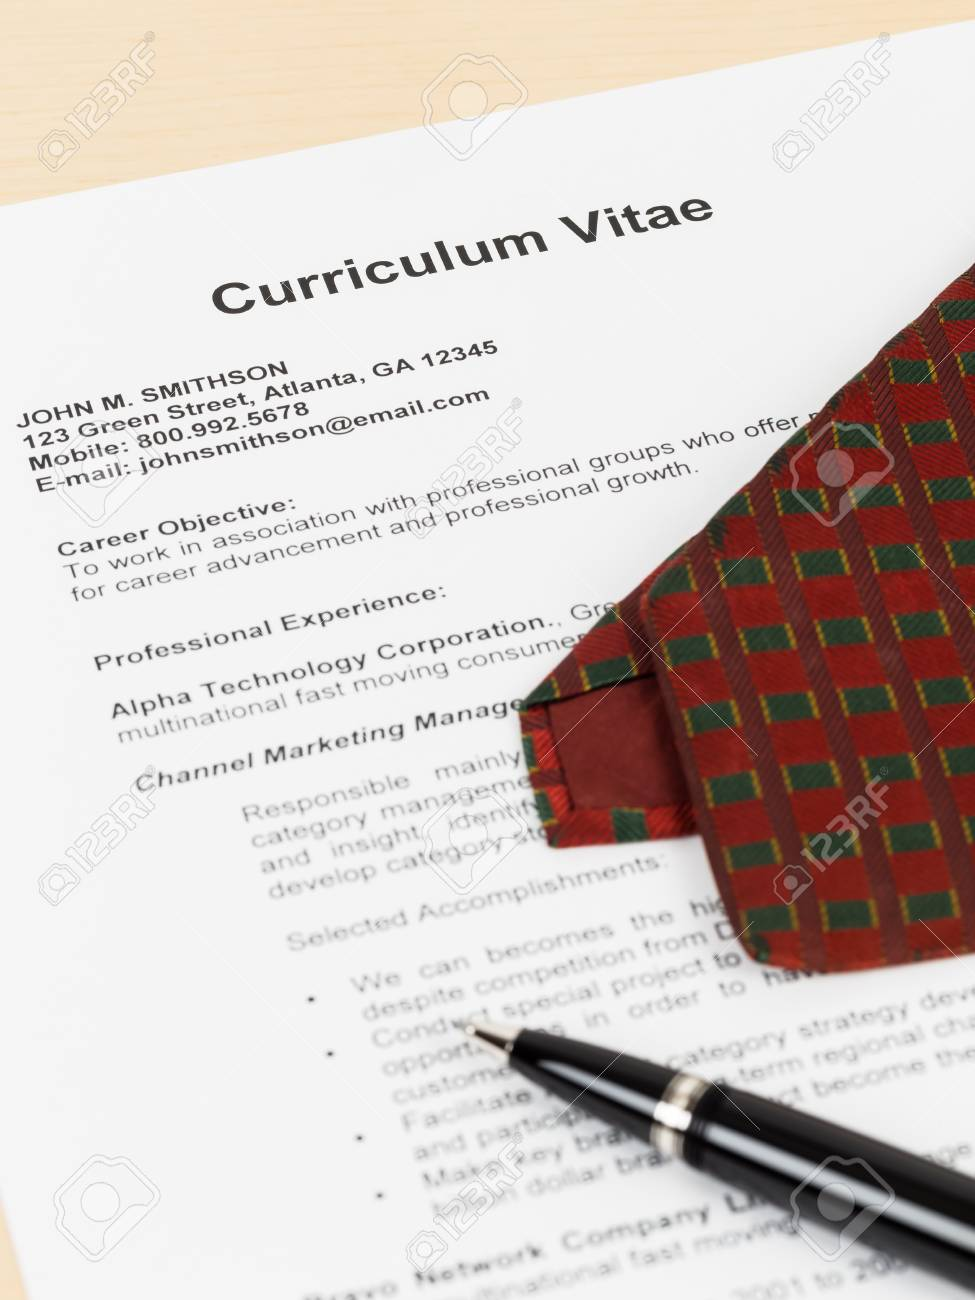 Curriculum Vitae Or CV With Pen, And Neck Tie; Concept Job Applying ...